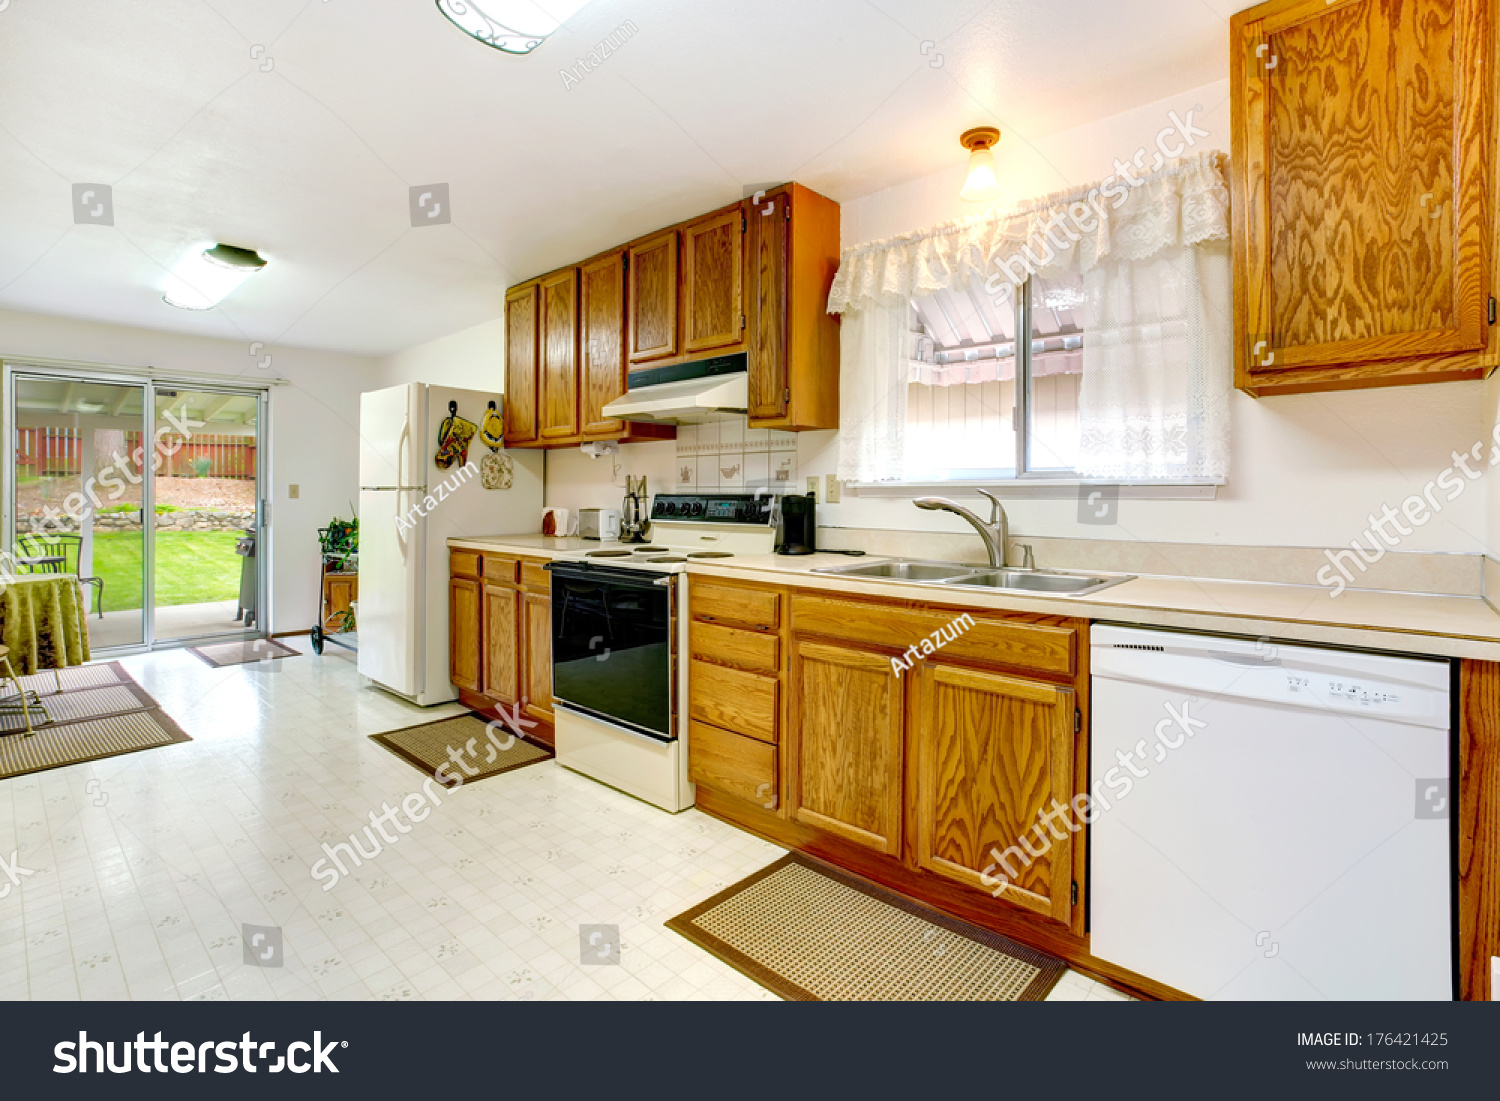 Bright Kitchen Wood Cabinets Tile Floor Stock Photo Edit Now